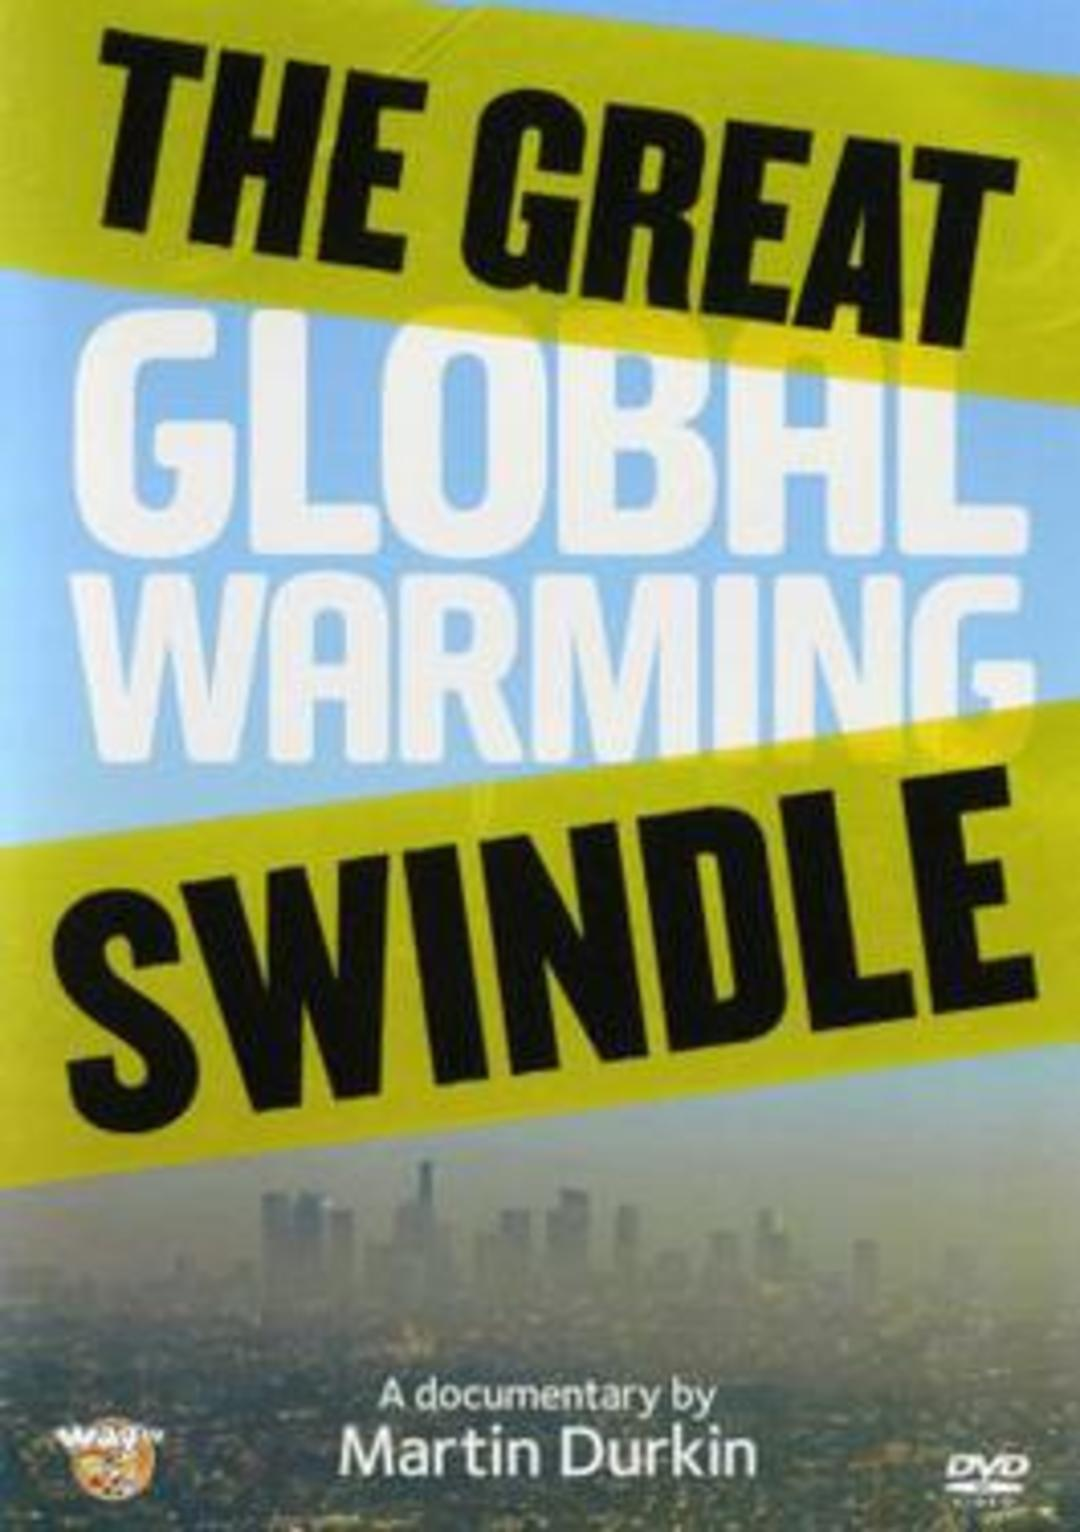 global warming swindle Watch the great global warming swindle online a controversial global warming documentary that suggests the scientific opinion on climate change is being influenced by funding and political factors watch the great global warming swindle online.